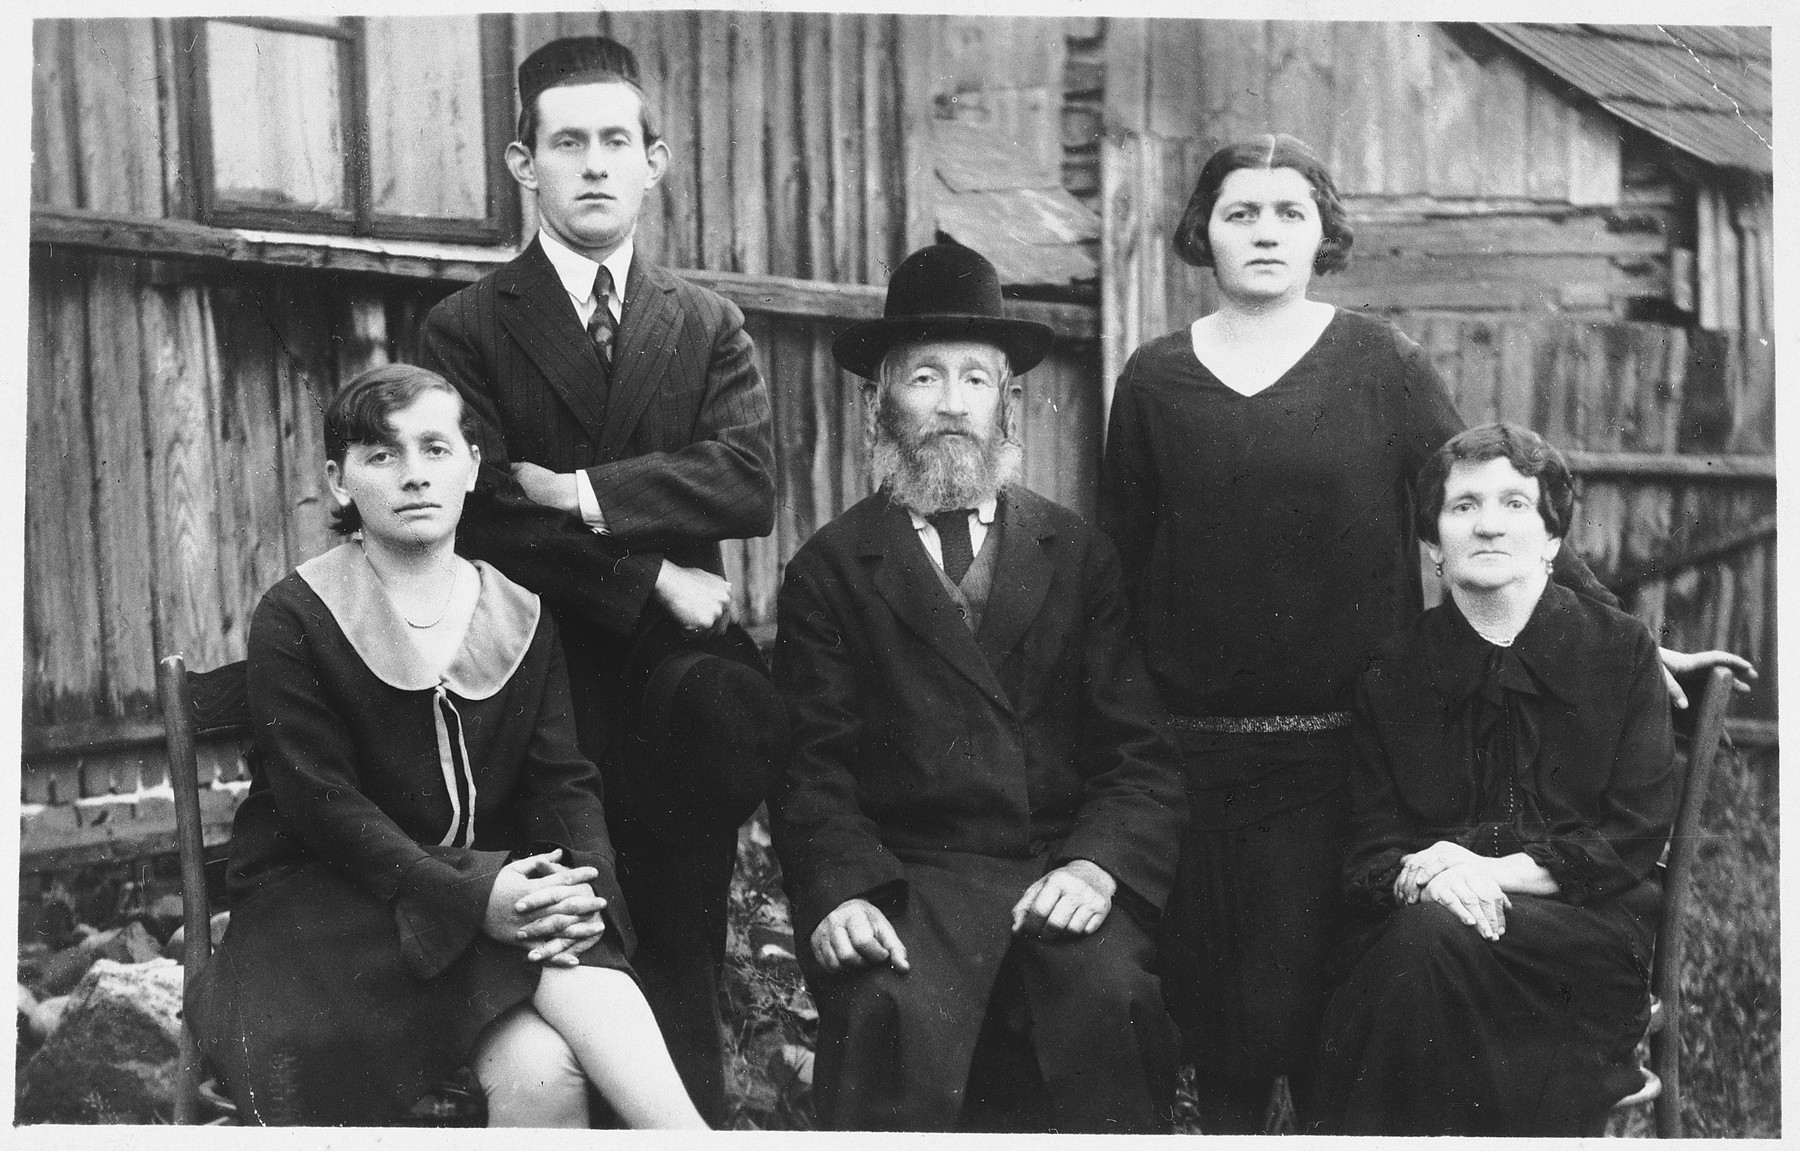 Members of a Jewish family pose outside in Kolbuszowa.  Pictured are Hersh (Sonel) Yaacov and Dobe (Mania) Kornbluth Silber (seated on the right) with their children, Rachel (seated front, left), Mosyc Aaron, and Bracha (standing in back).